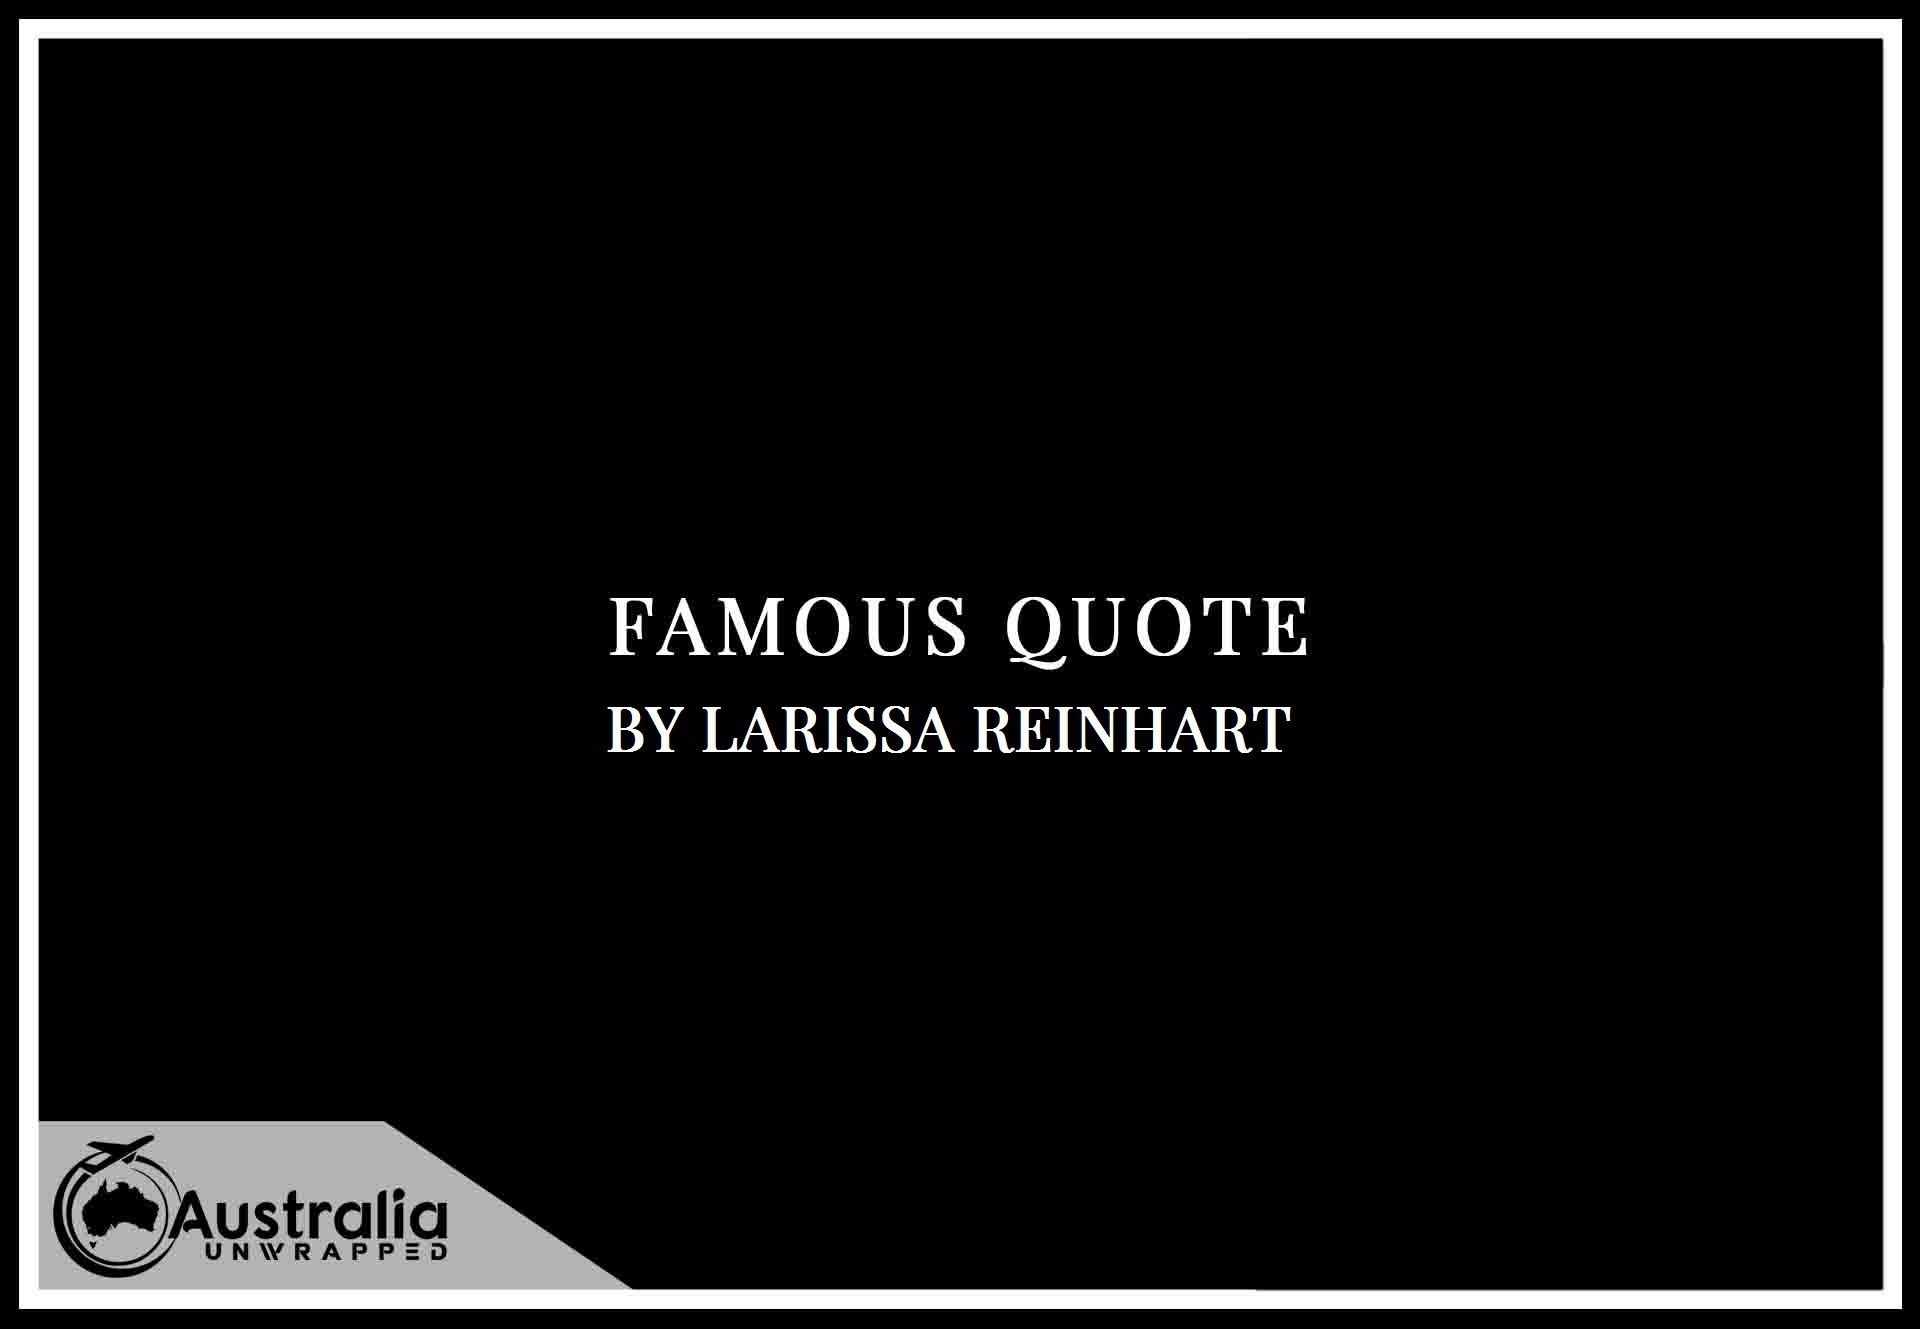 Larissa Reinhart's Top 1 Popular and Famous Quotes